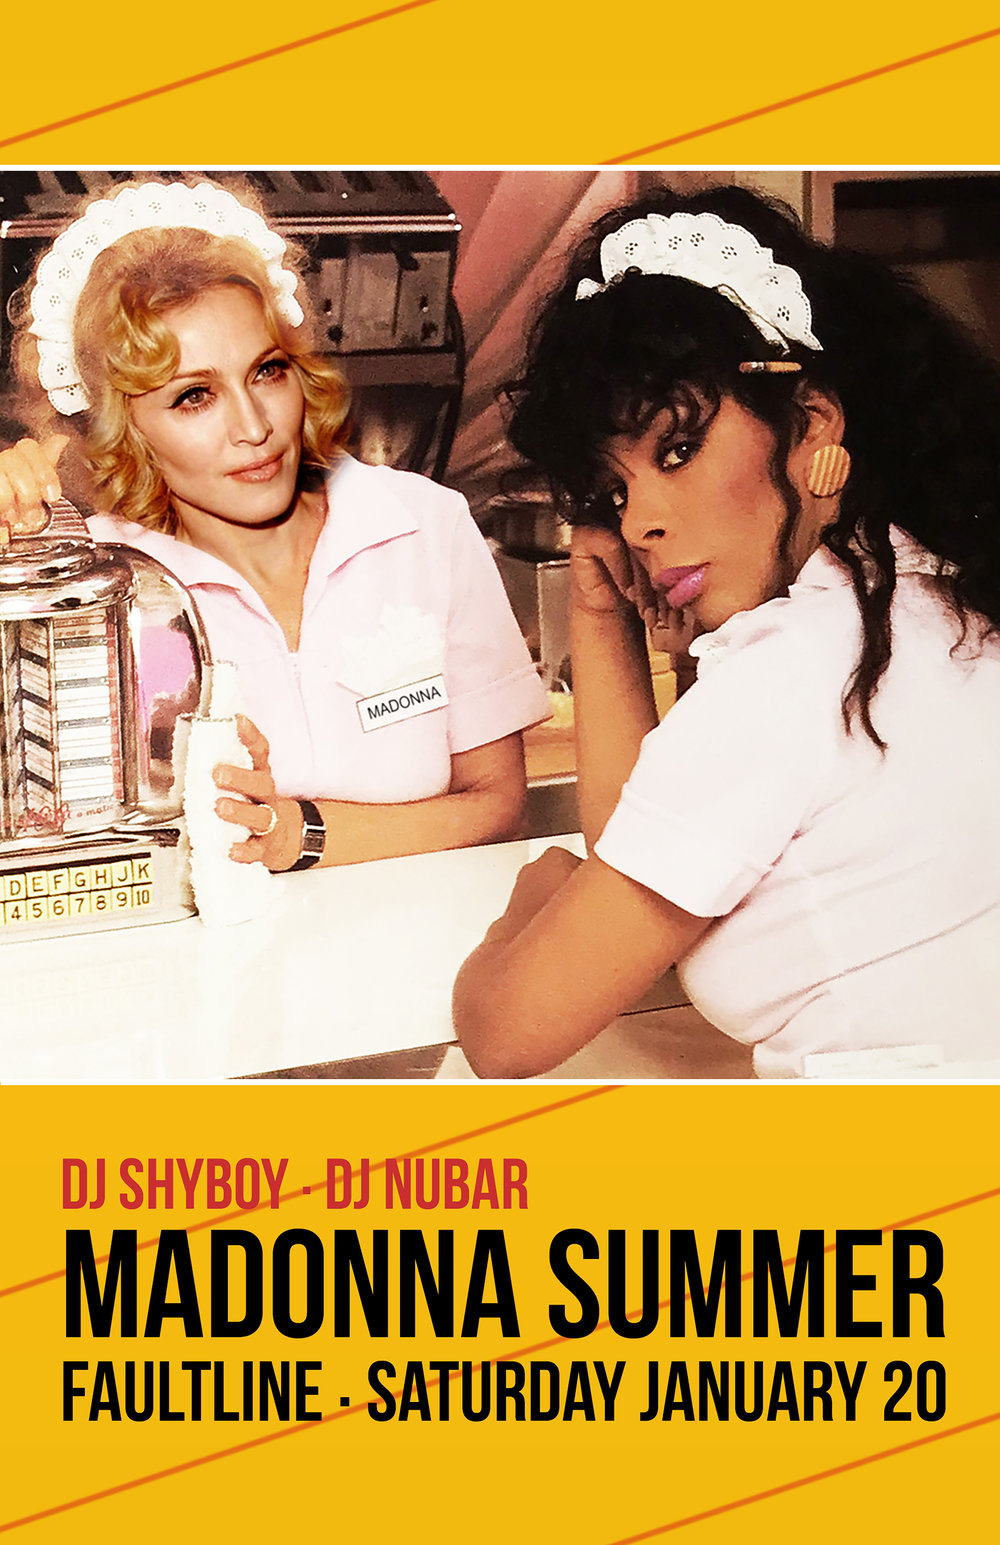 MaDonnaSummer-Jan2018-DecorPoster2.jpg